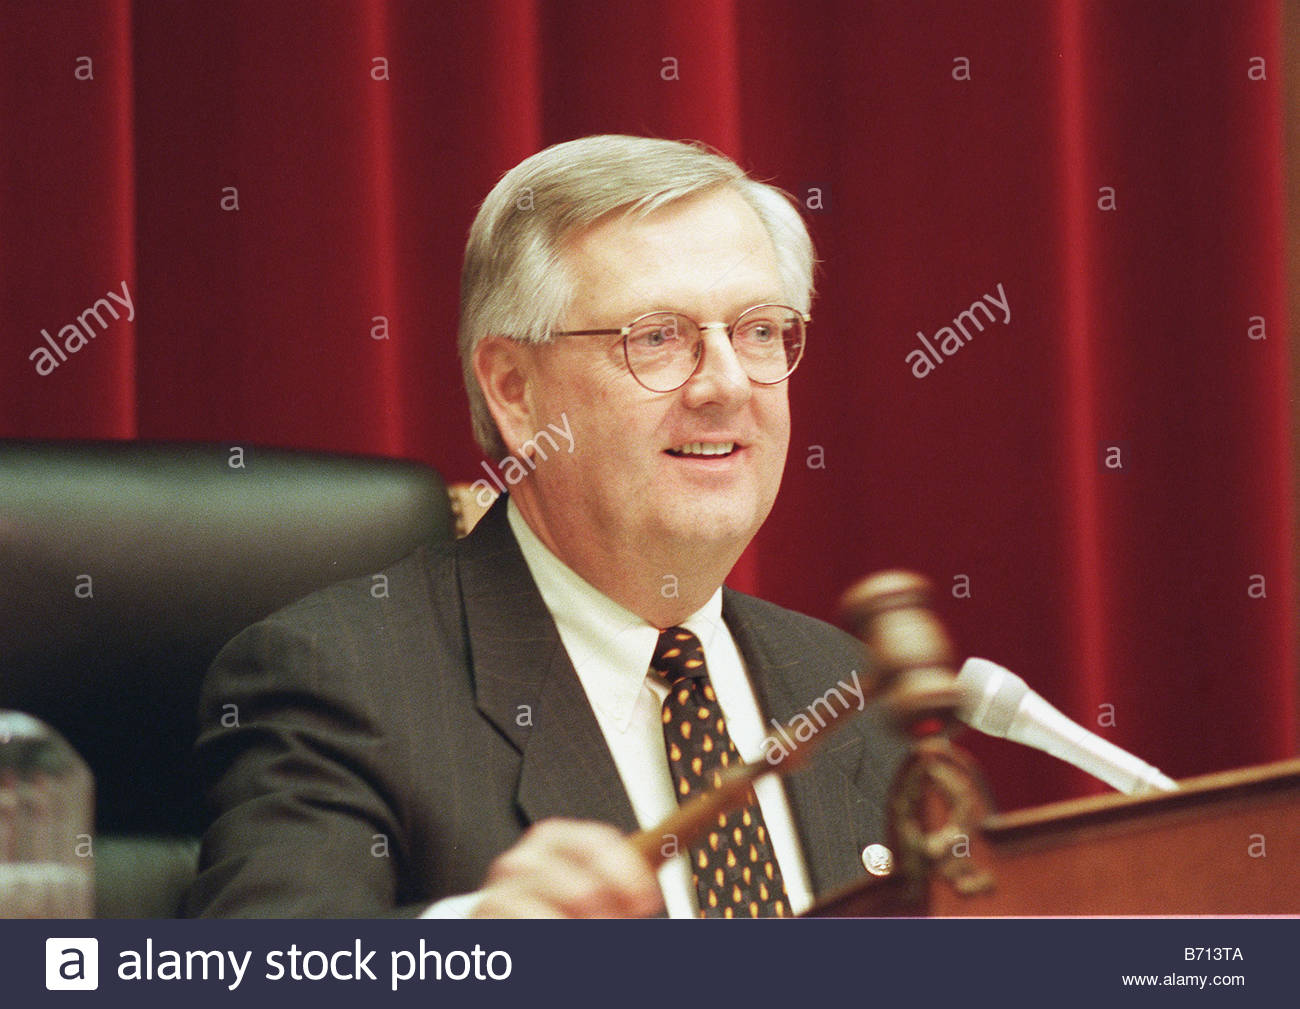 2 16 00 MISSILE DEFENCE PROGRAMS Chairman Curt Weldon R Pa during his opening statement at the hearing on ballistic - Stock Image